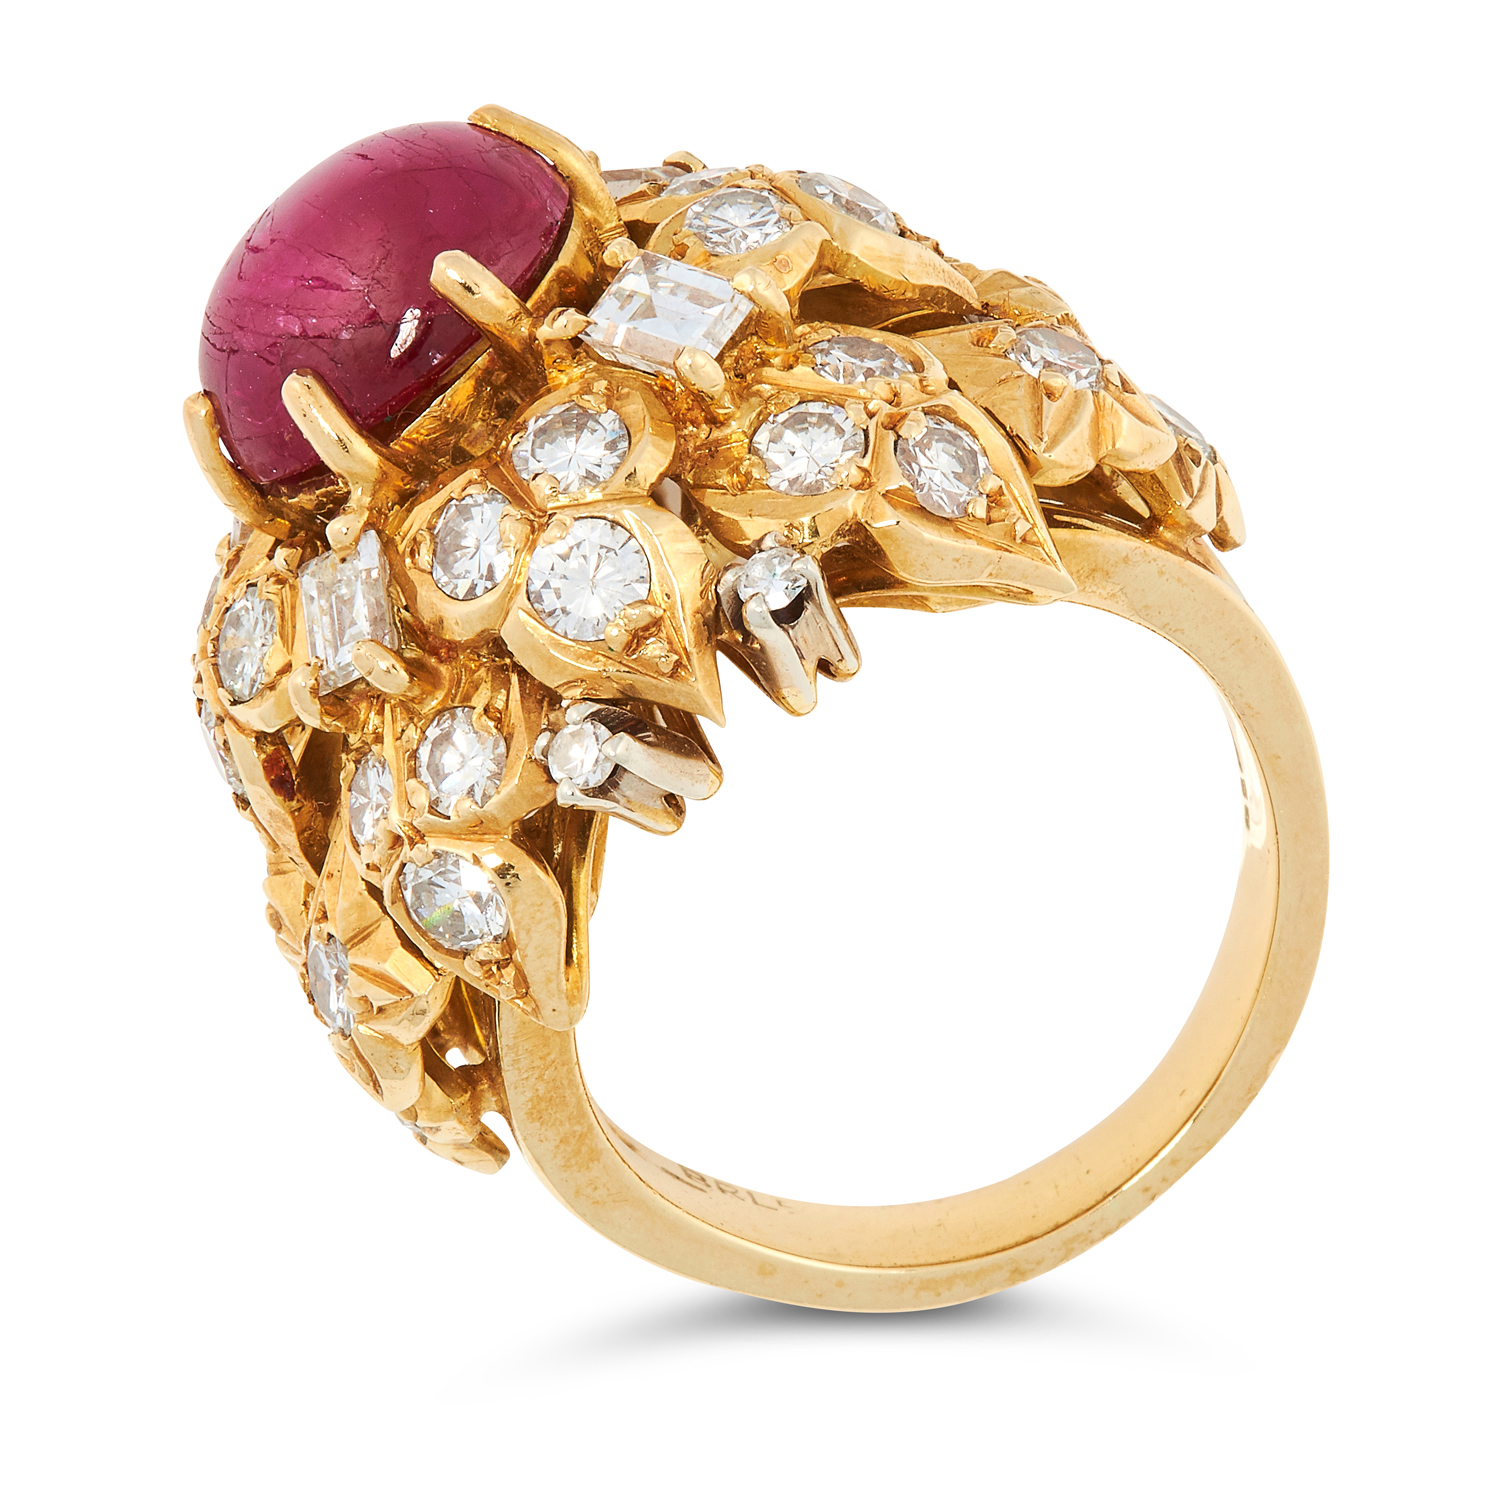 A VINTAGE RUBY AND DIAMOND RING, BEN ROSENFELD 1974 in 18ct yellow gold, set with an oval cabochon